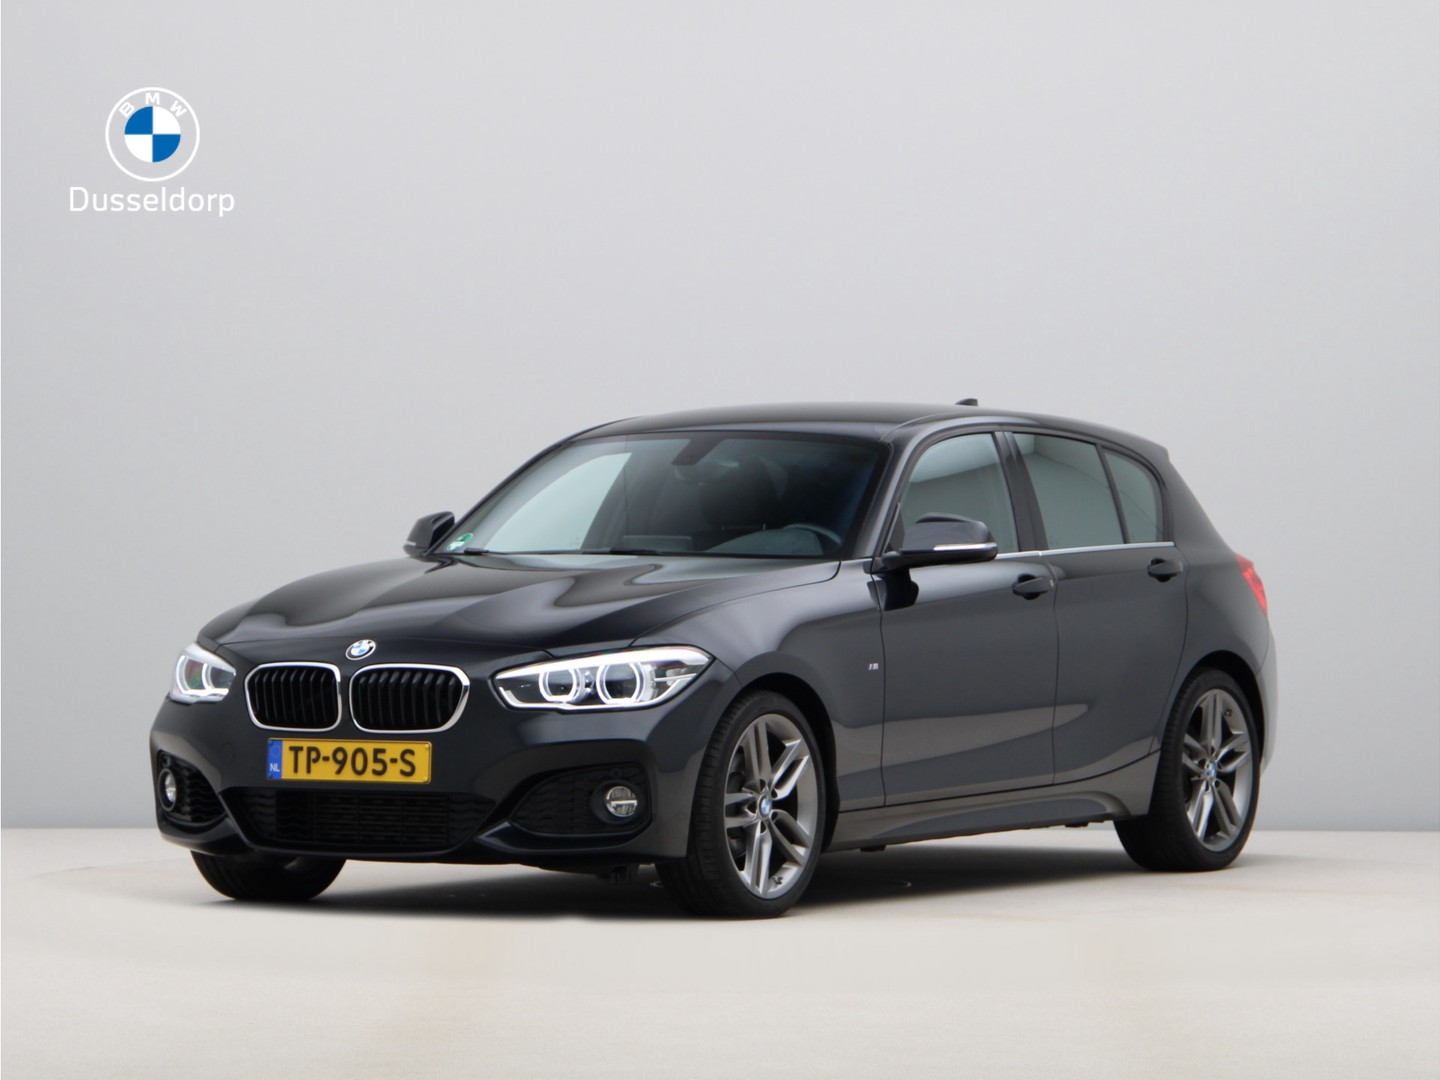 Bmw 1 serie 116i high executive m sport - 18 inch - privacy glass